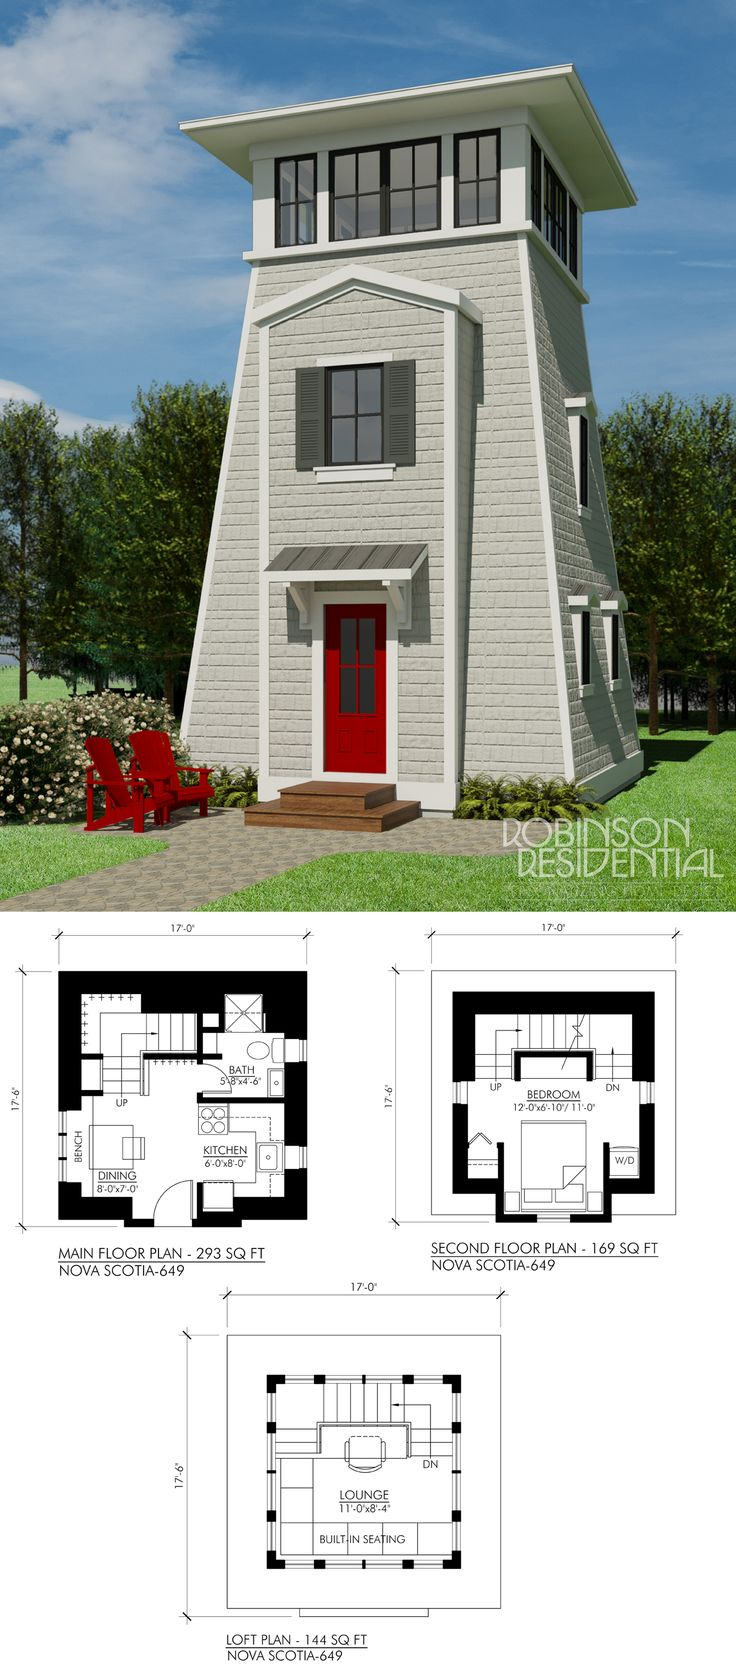 Best 25 tower house ideas on pinterest small wooden for Tower house plans